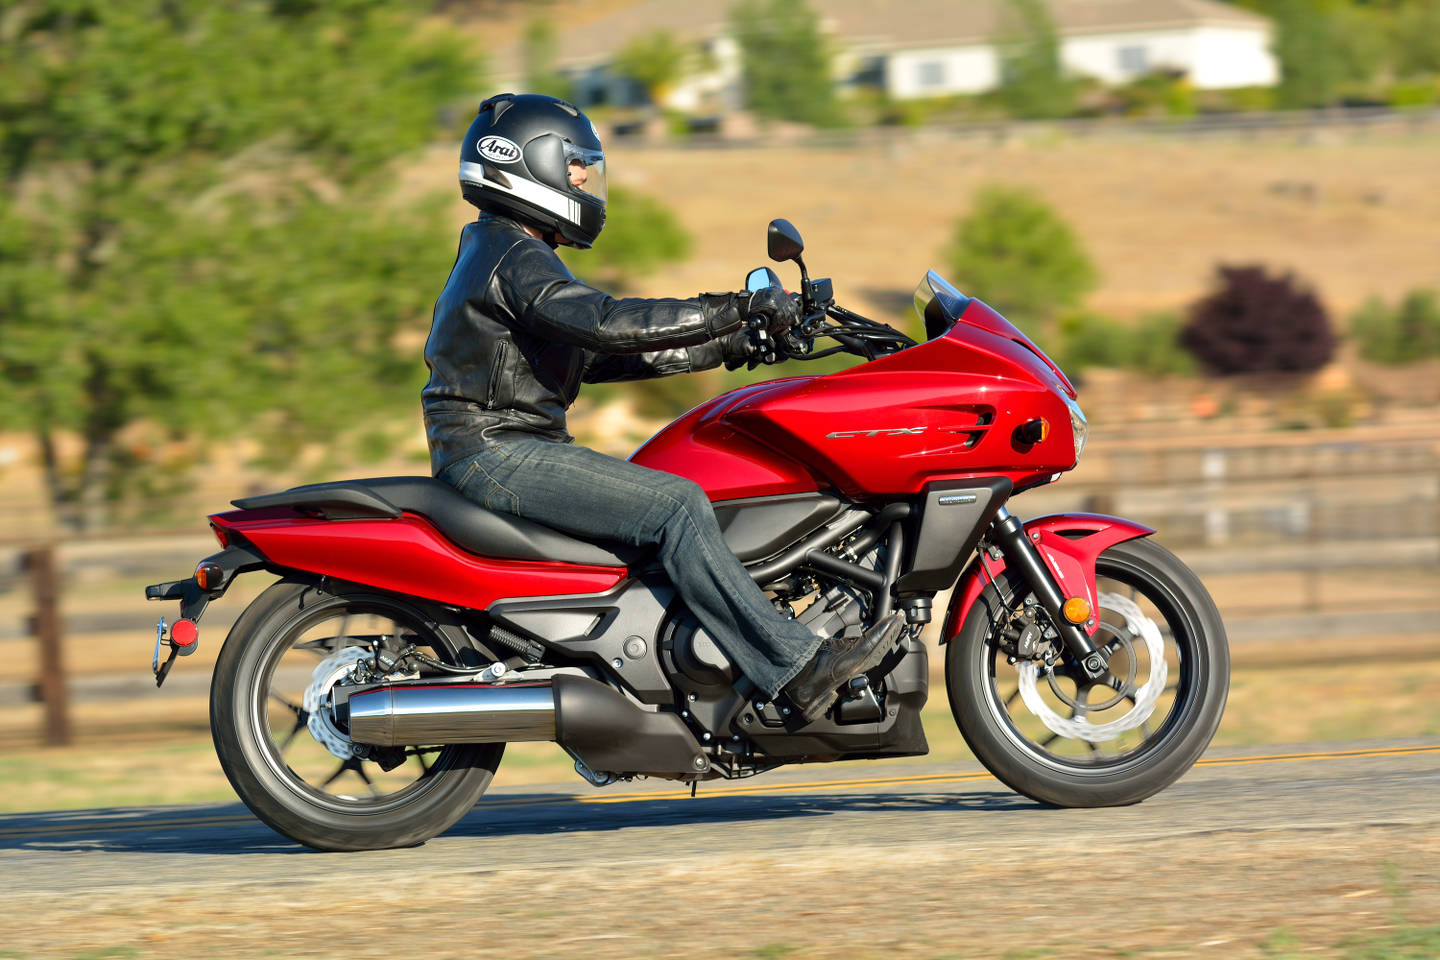 2017 honda ctx700 dct review